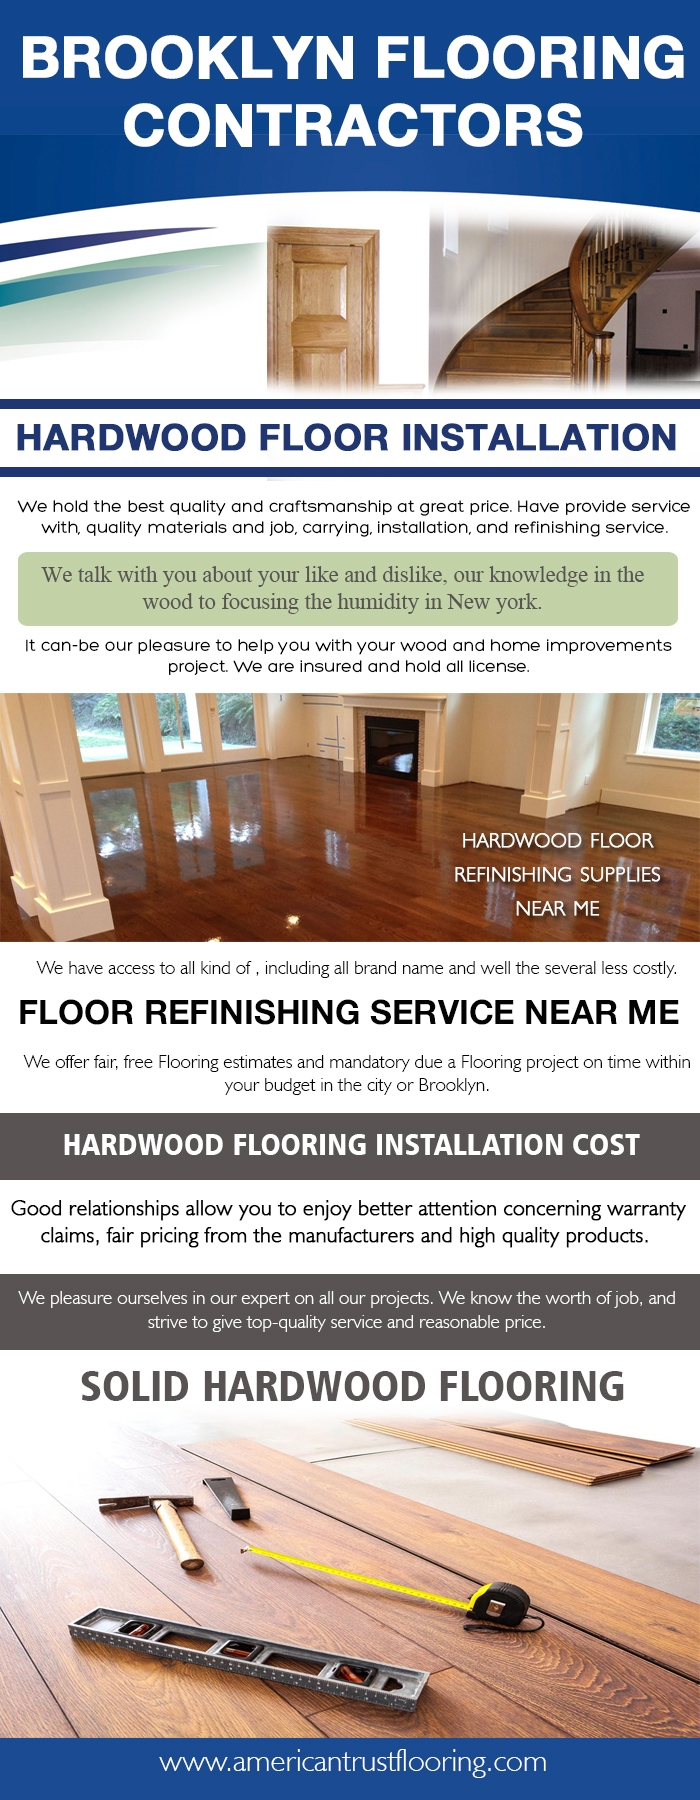 Website: hardwood flooring, Bro - woodfloorsnyc | ello